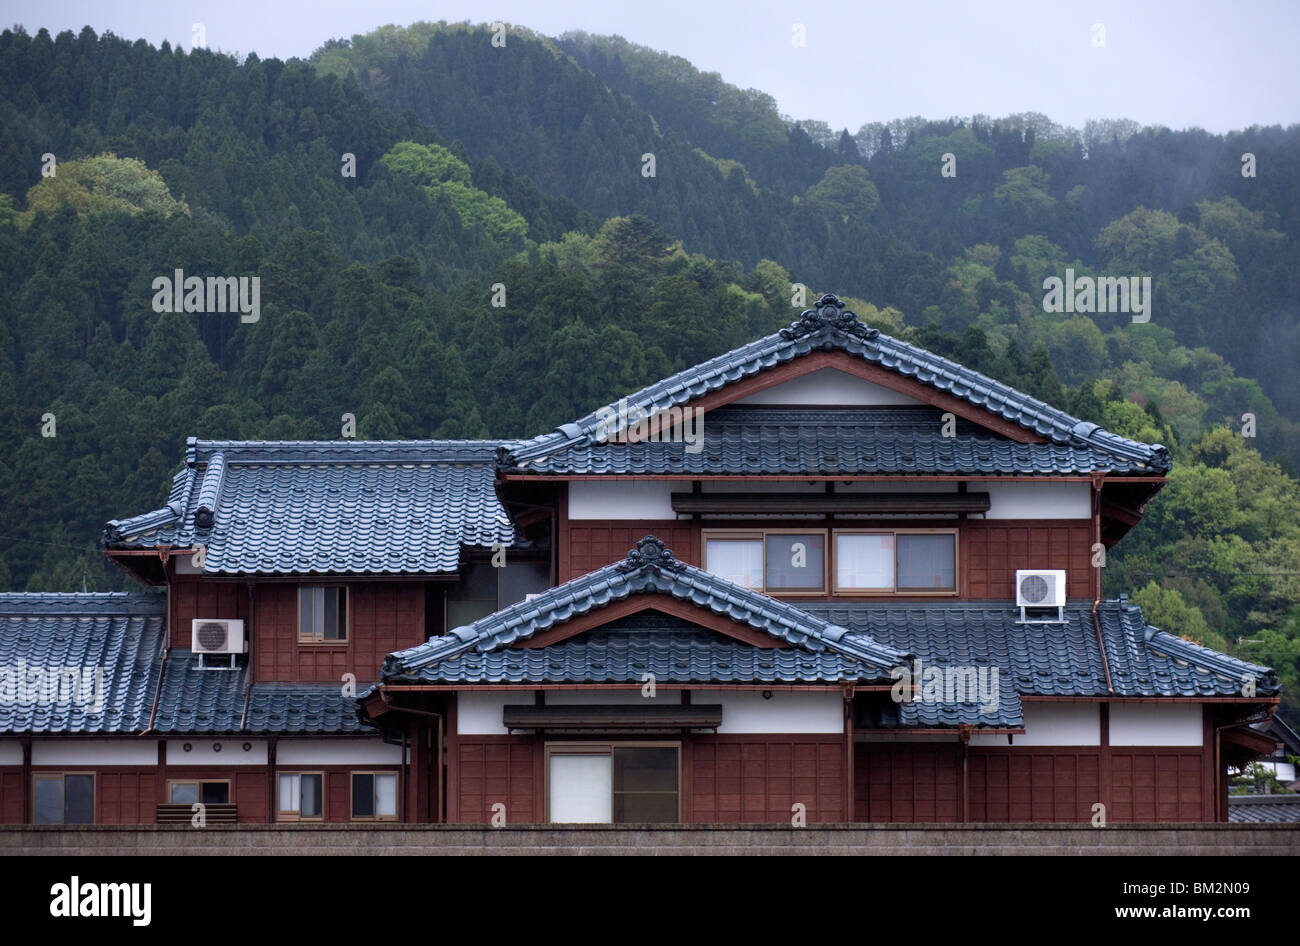 Traditional Japanese Home Stock Photos & Traditional Japanese Home ...